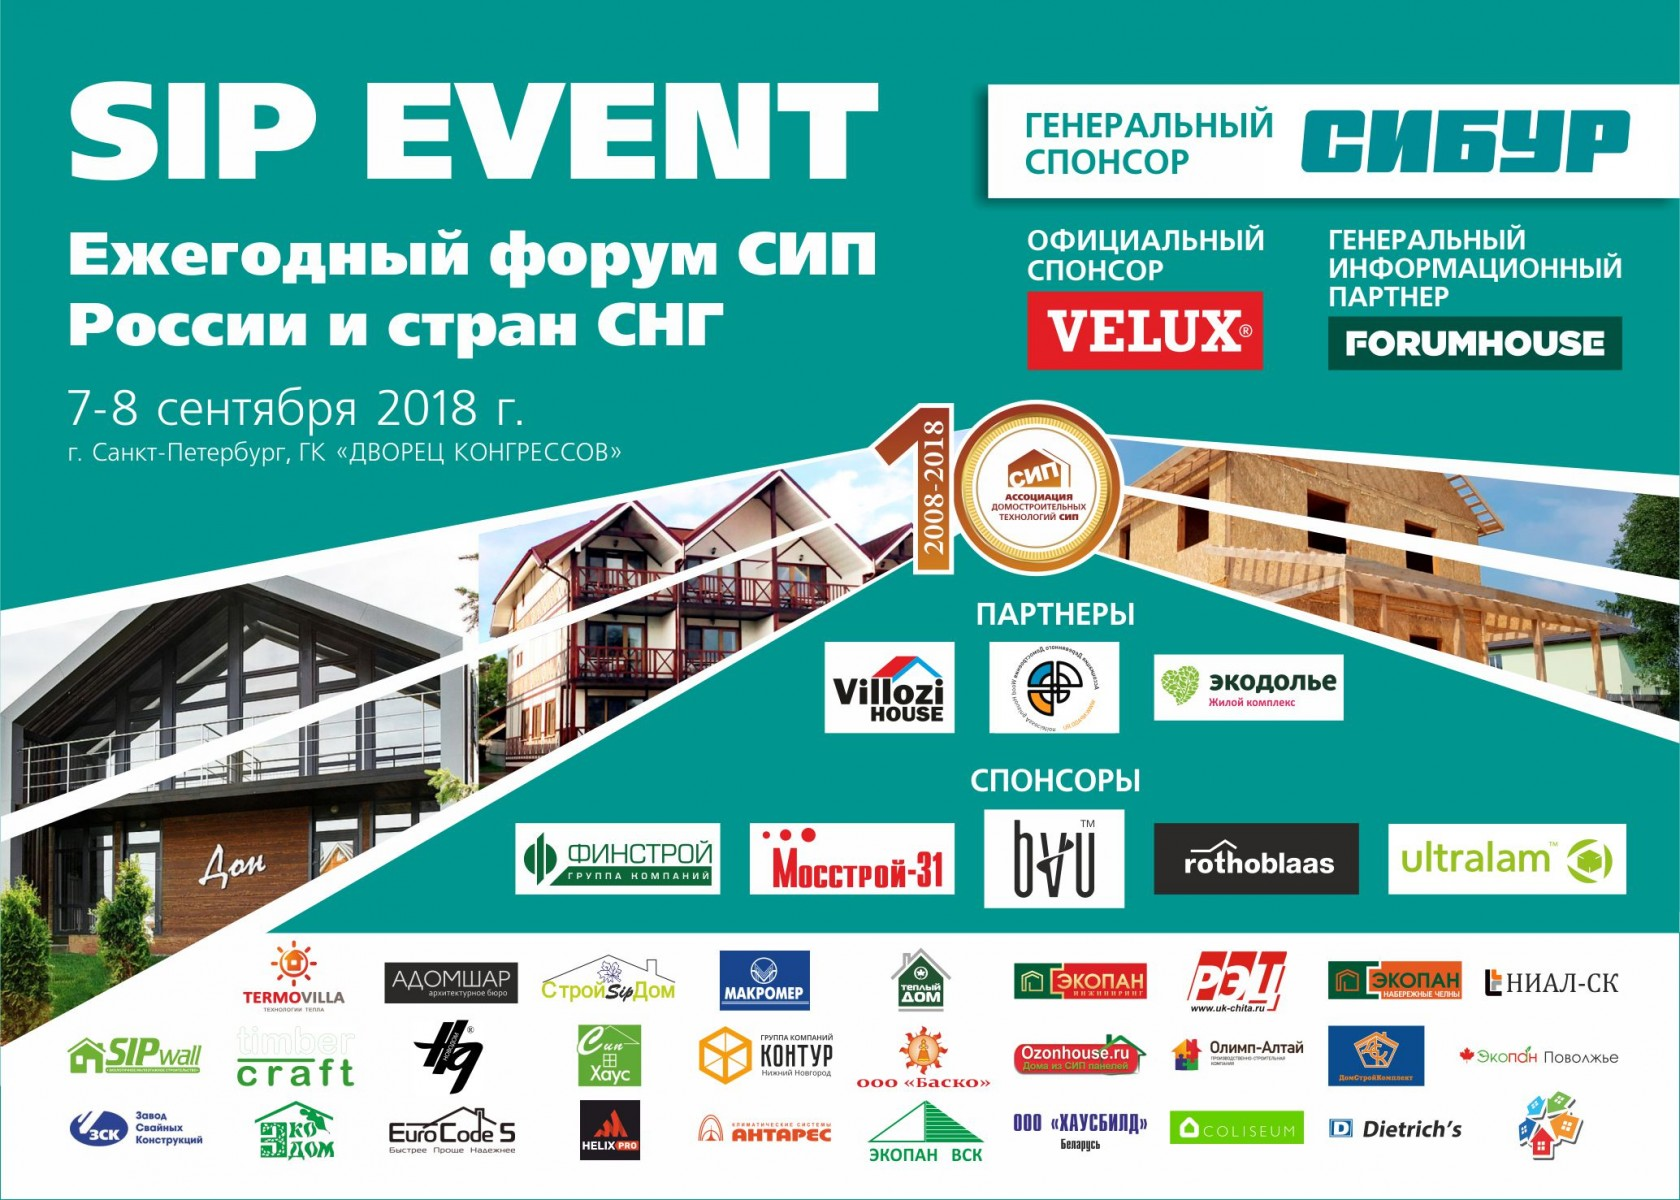 sip-event-2018-8